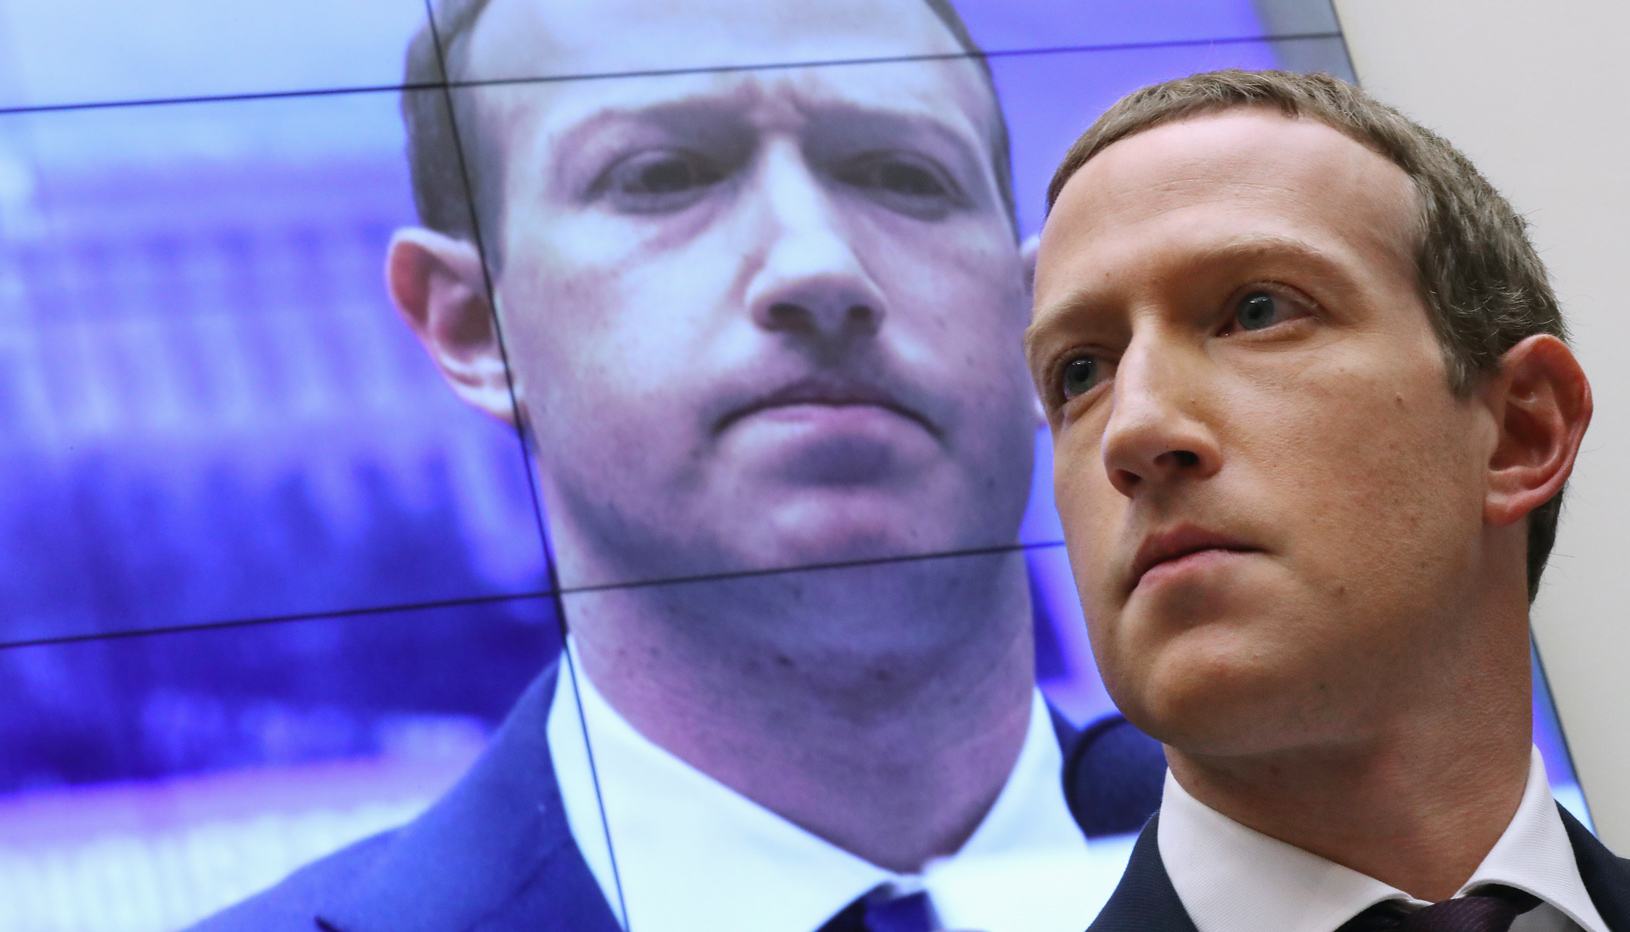 zuckerberg staring in the distance and pouting